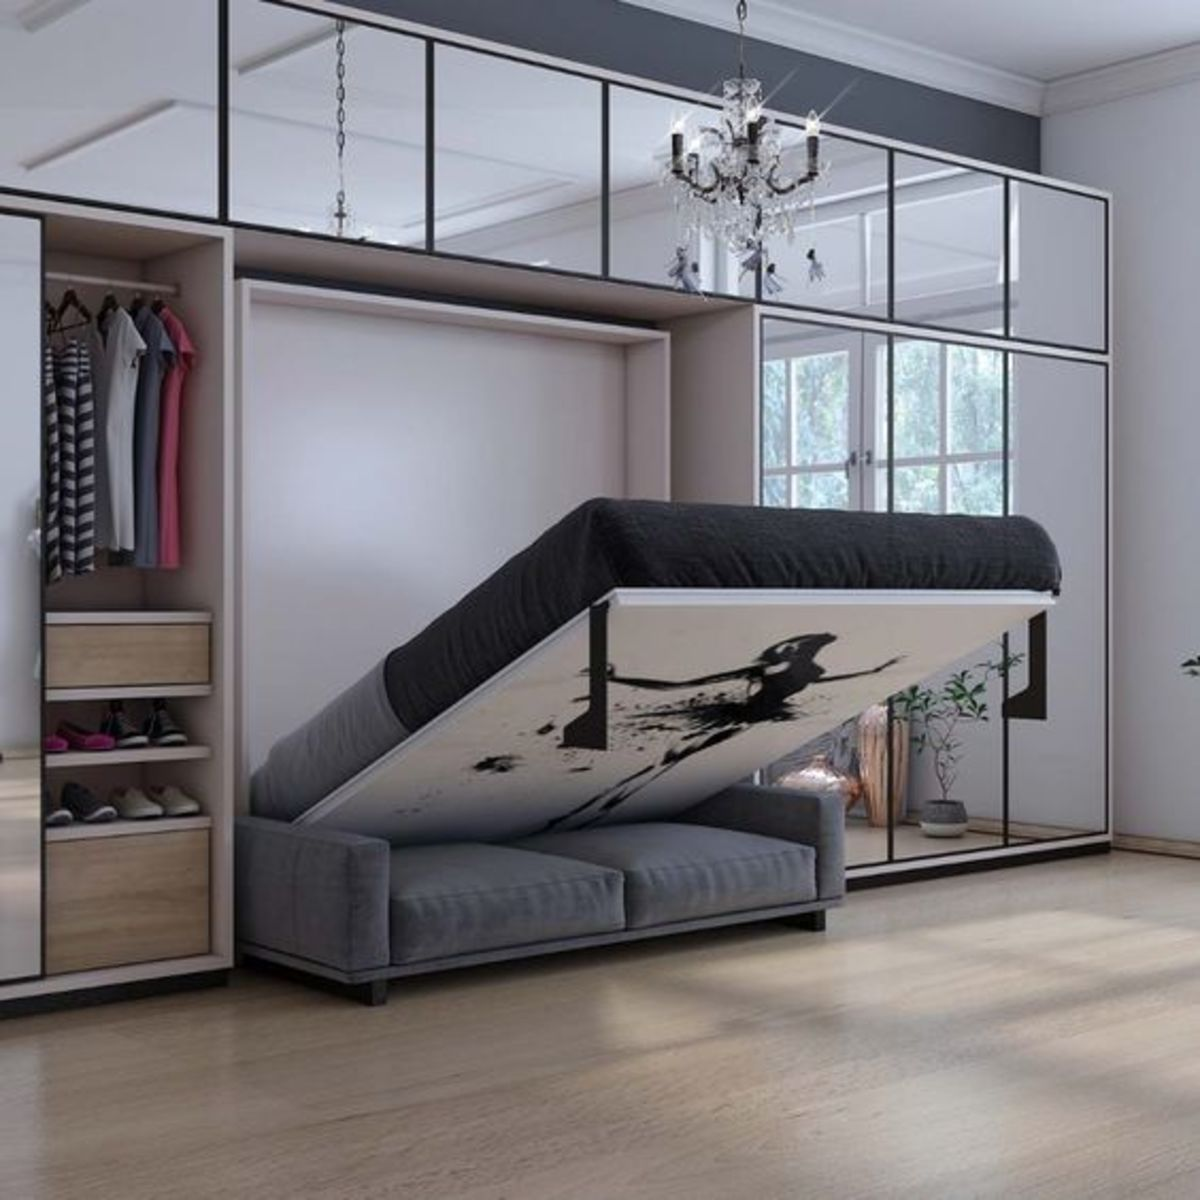 6 Amazing Murphy Bed Design Ideas for Small Space Bedrooms